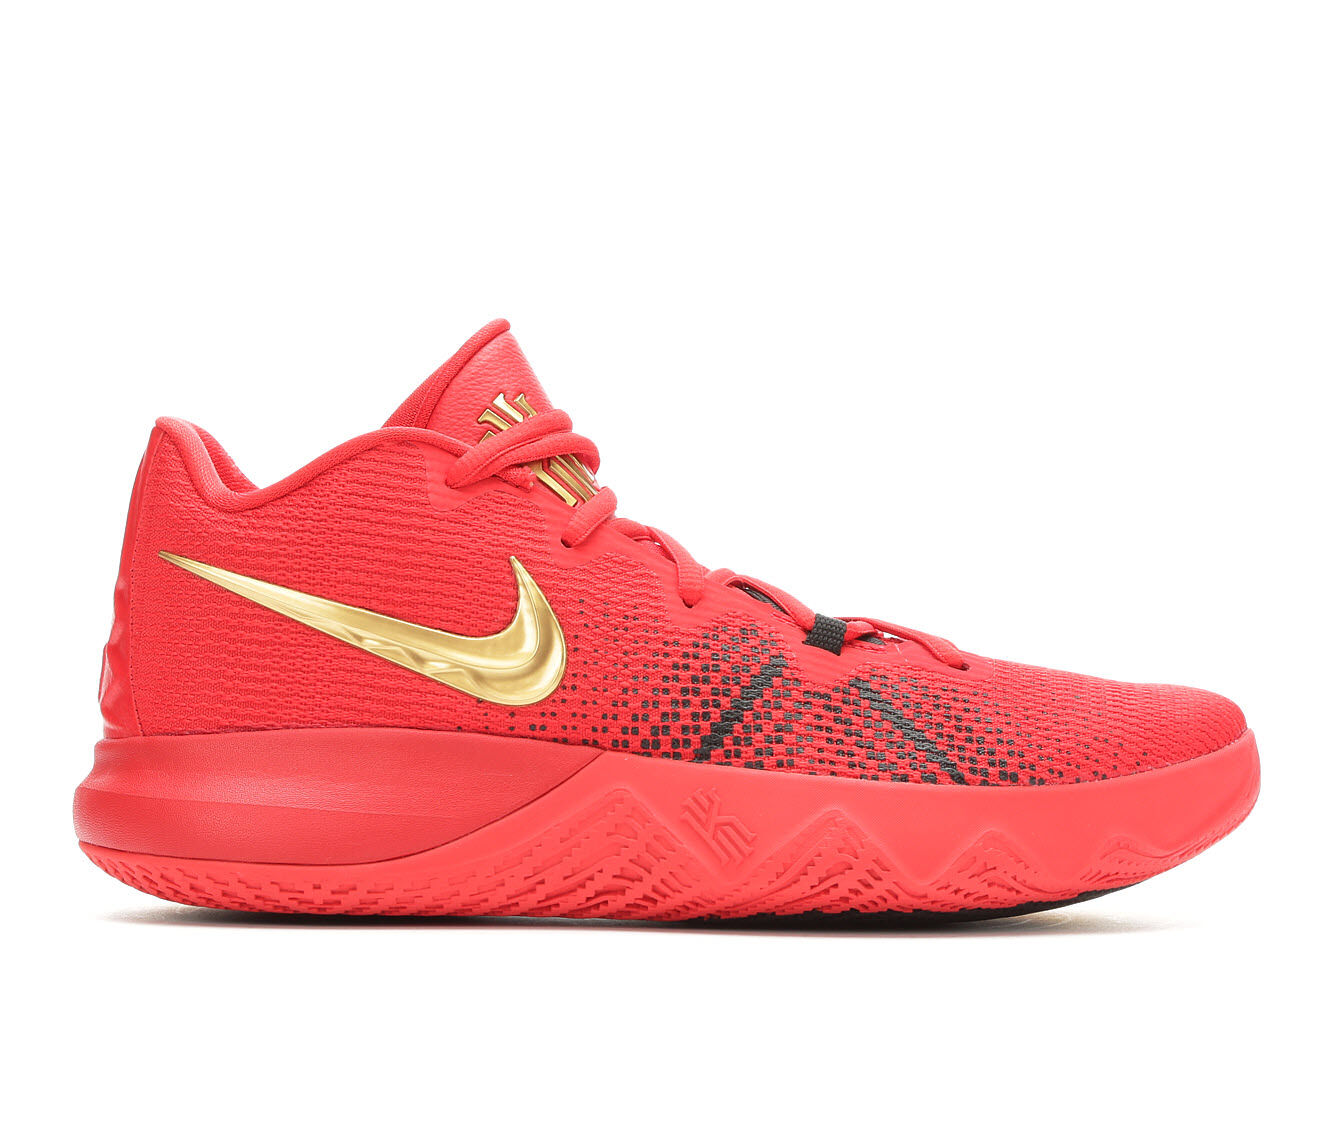 Men's Nike Kyrie Flytrap Basketball Shoes Red/Gold/Black